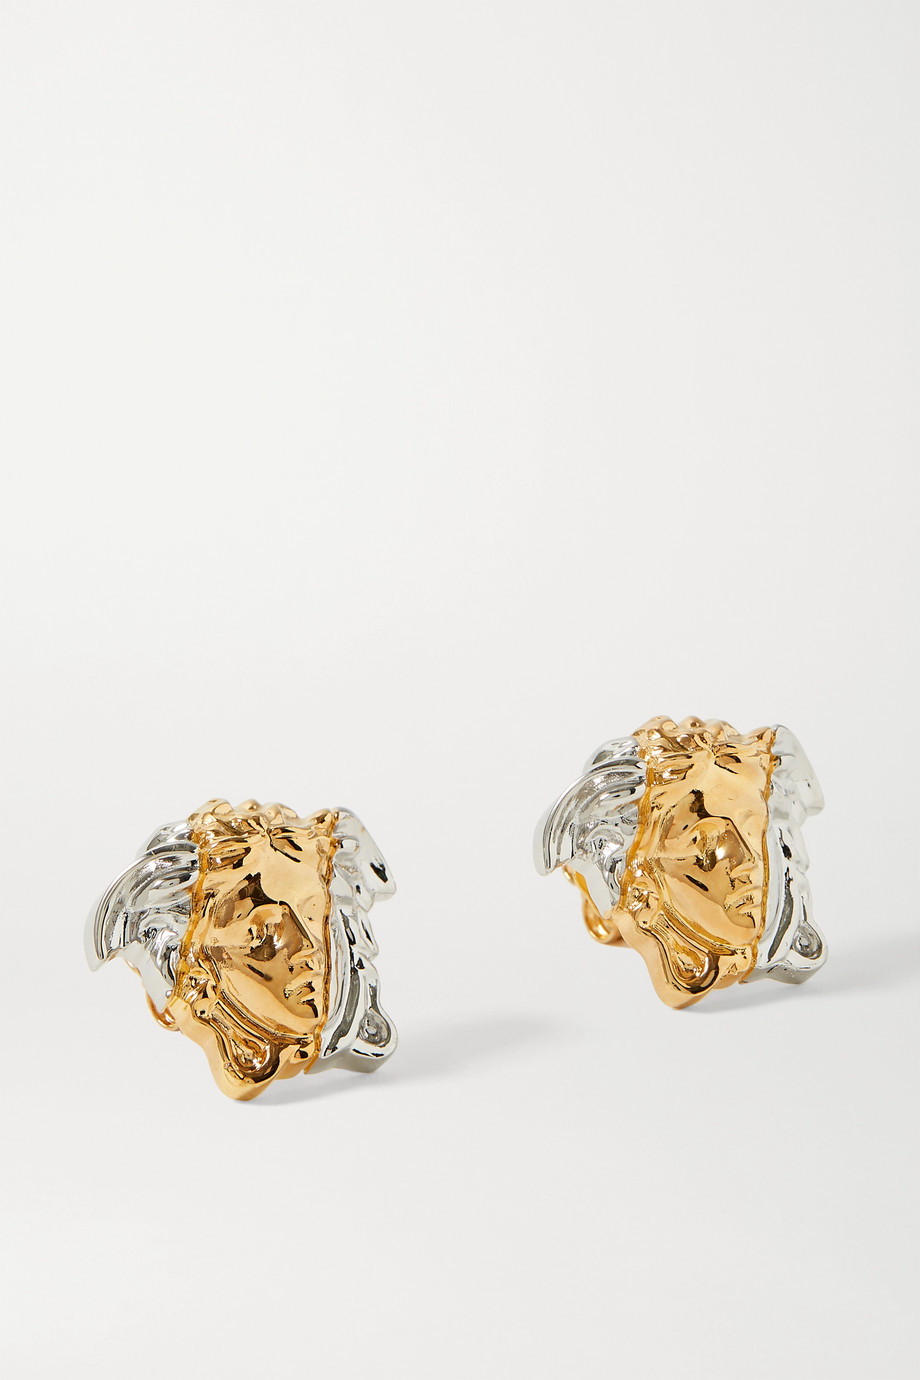 Versace Medusa gold and silver-tone earrings